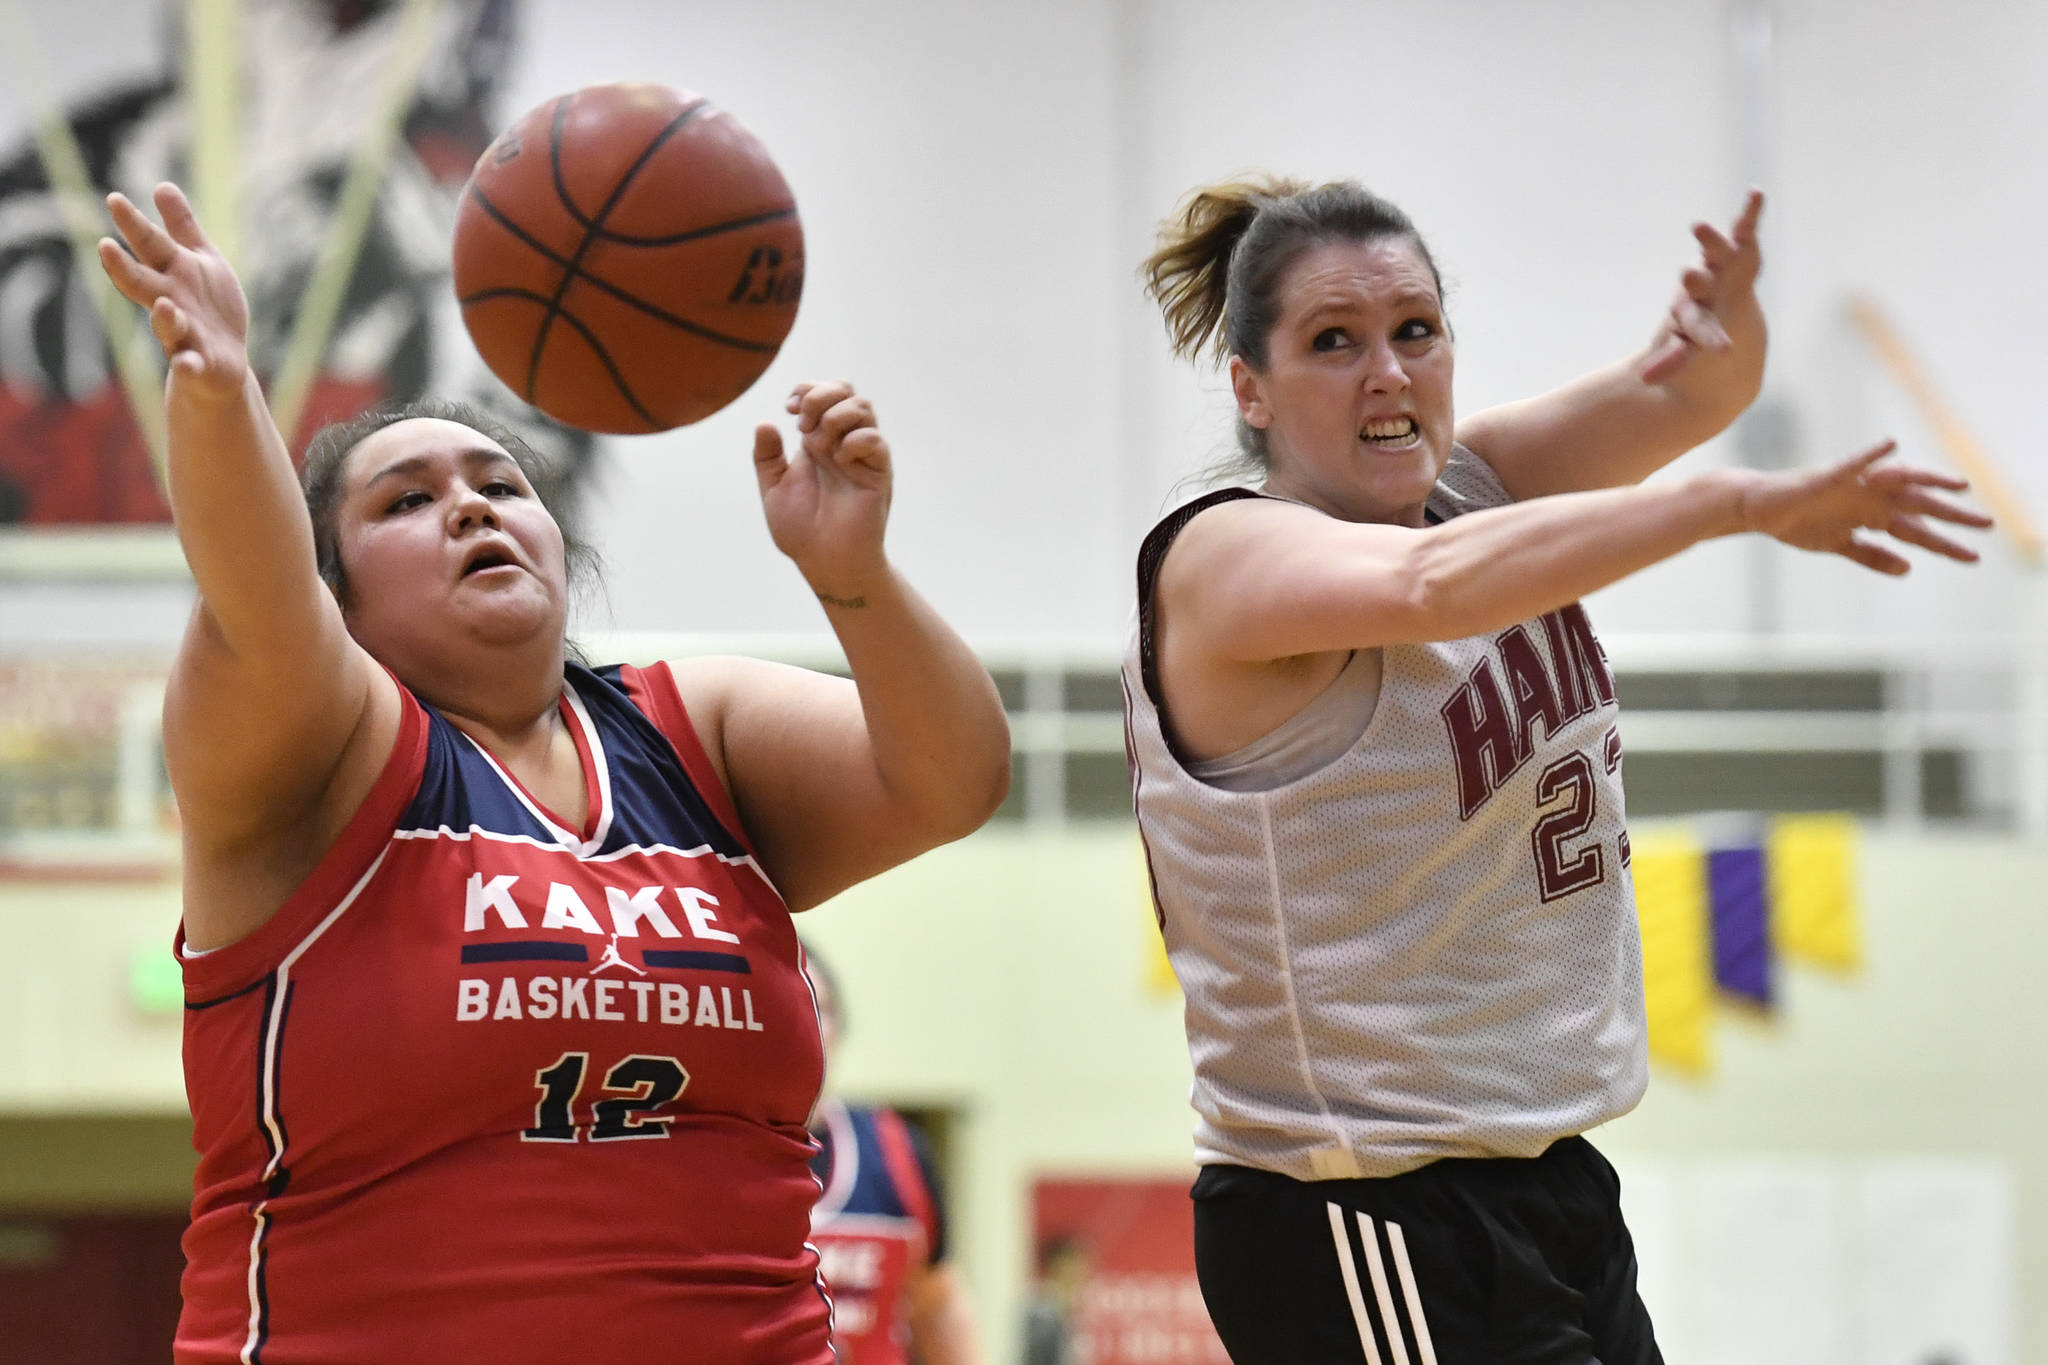 Kake's Sophia Aceveda, left, and Haines' Nicole Holm compete for a rebound at the Juneau Lions Club 73rd Annual Gold Medal Basketball Tournament at Juneau-Douglas High School: Yadaa.at Kalé on Wednesday, March 20, 2019. Haines won 67-20. (Michael Penn | Juneau Empire)